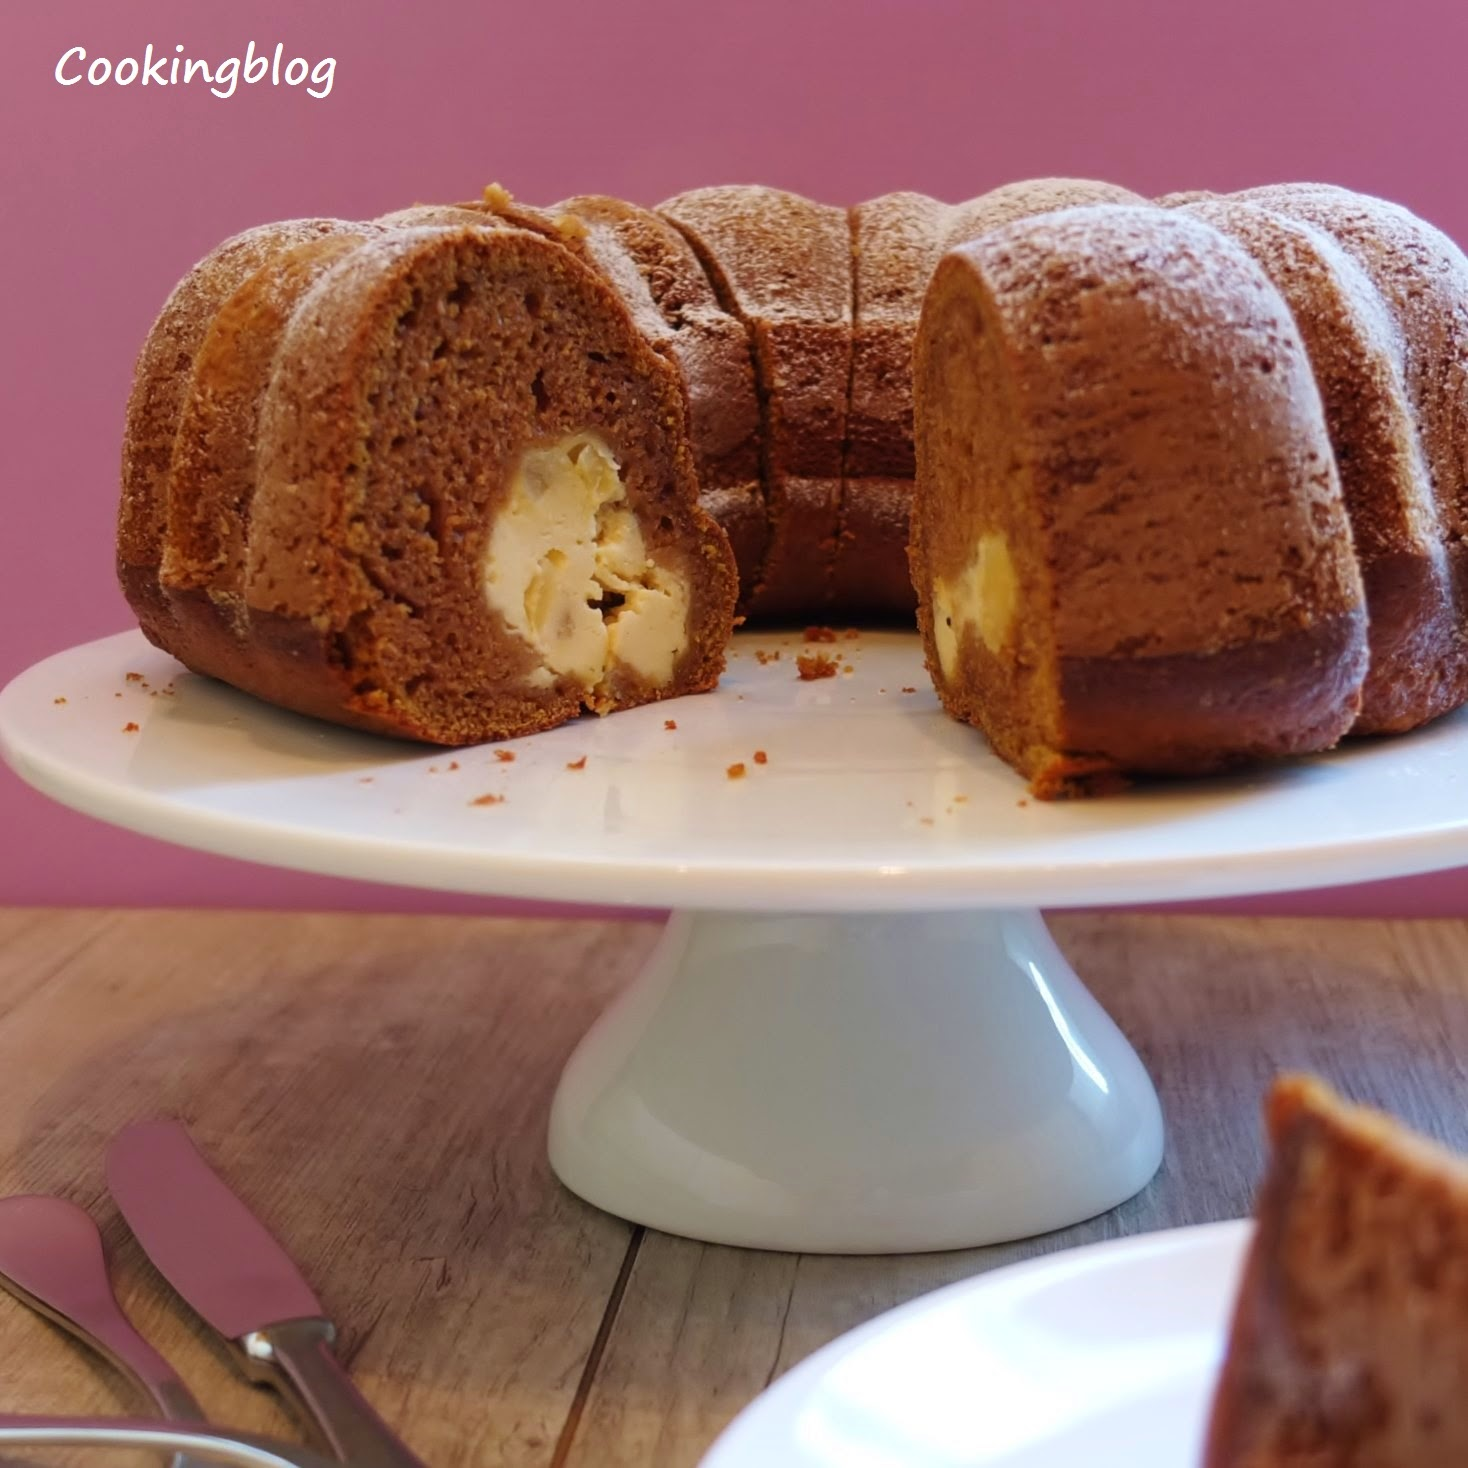 Bundt de abóbora e gengibre com recheio de queijo creme | Pumpkin-ginger Bundt cake with cream cheese filling